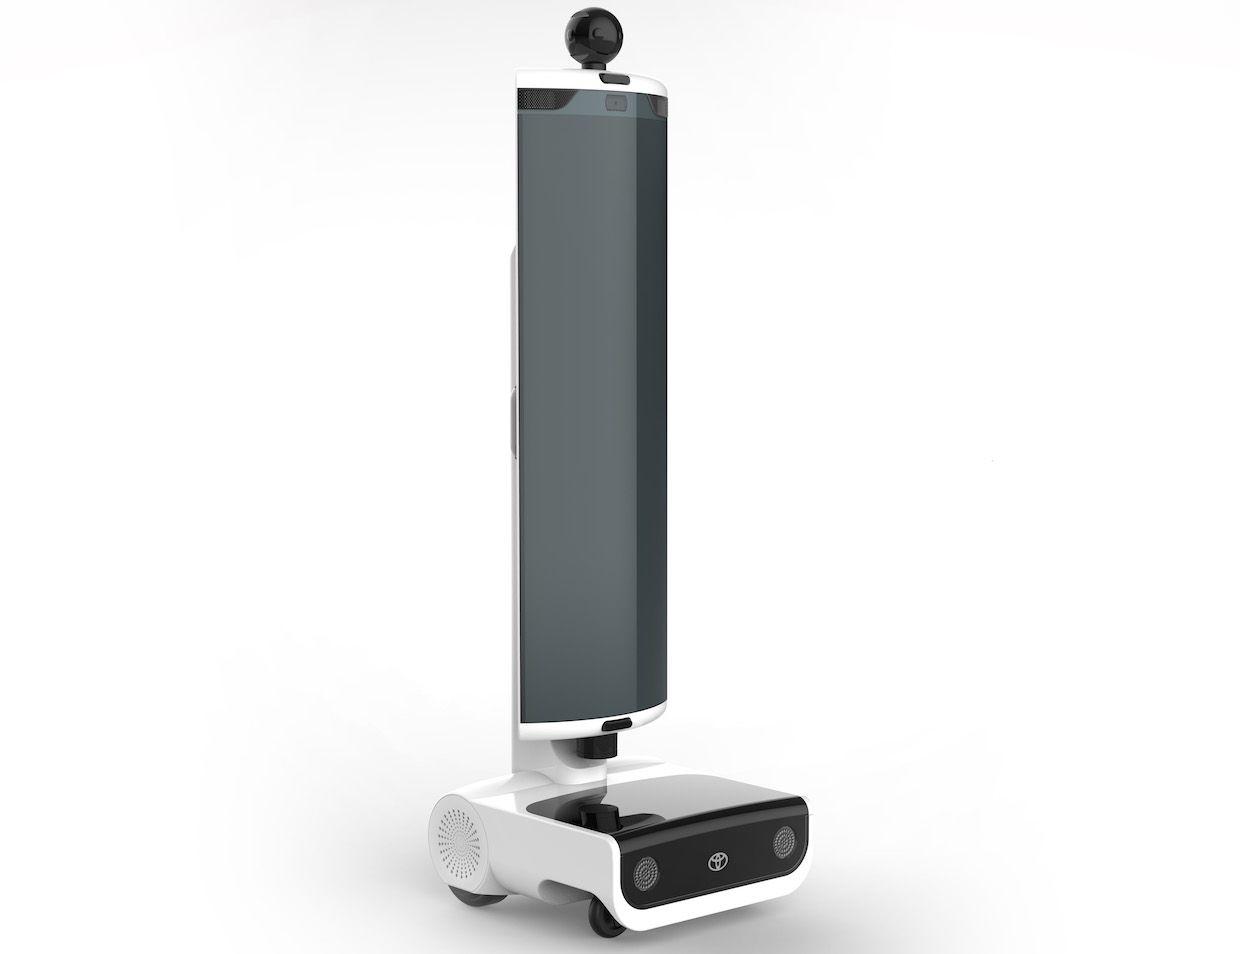 Toyota Research Developing New Telepresence Robot For 2020 Olympics Ieee Spectrum With Images 2020 Olympics Development Data Processing